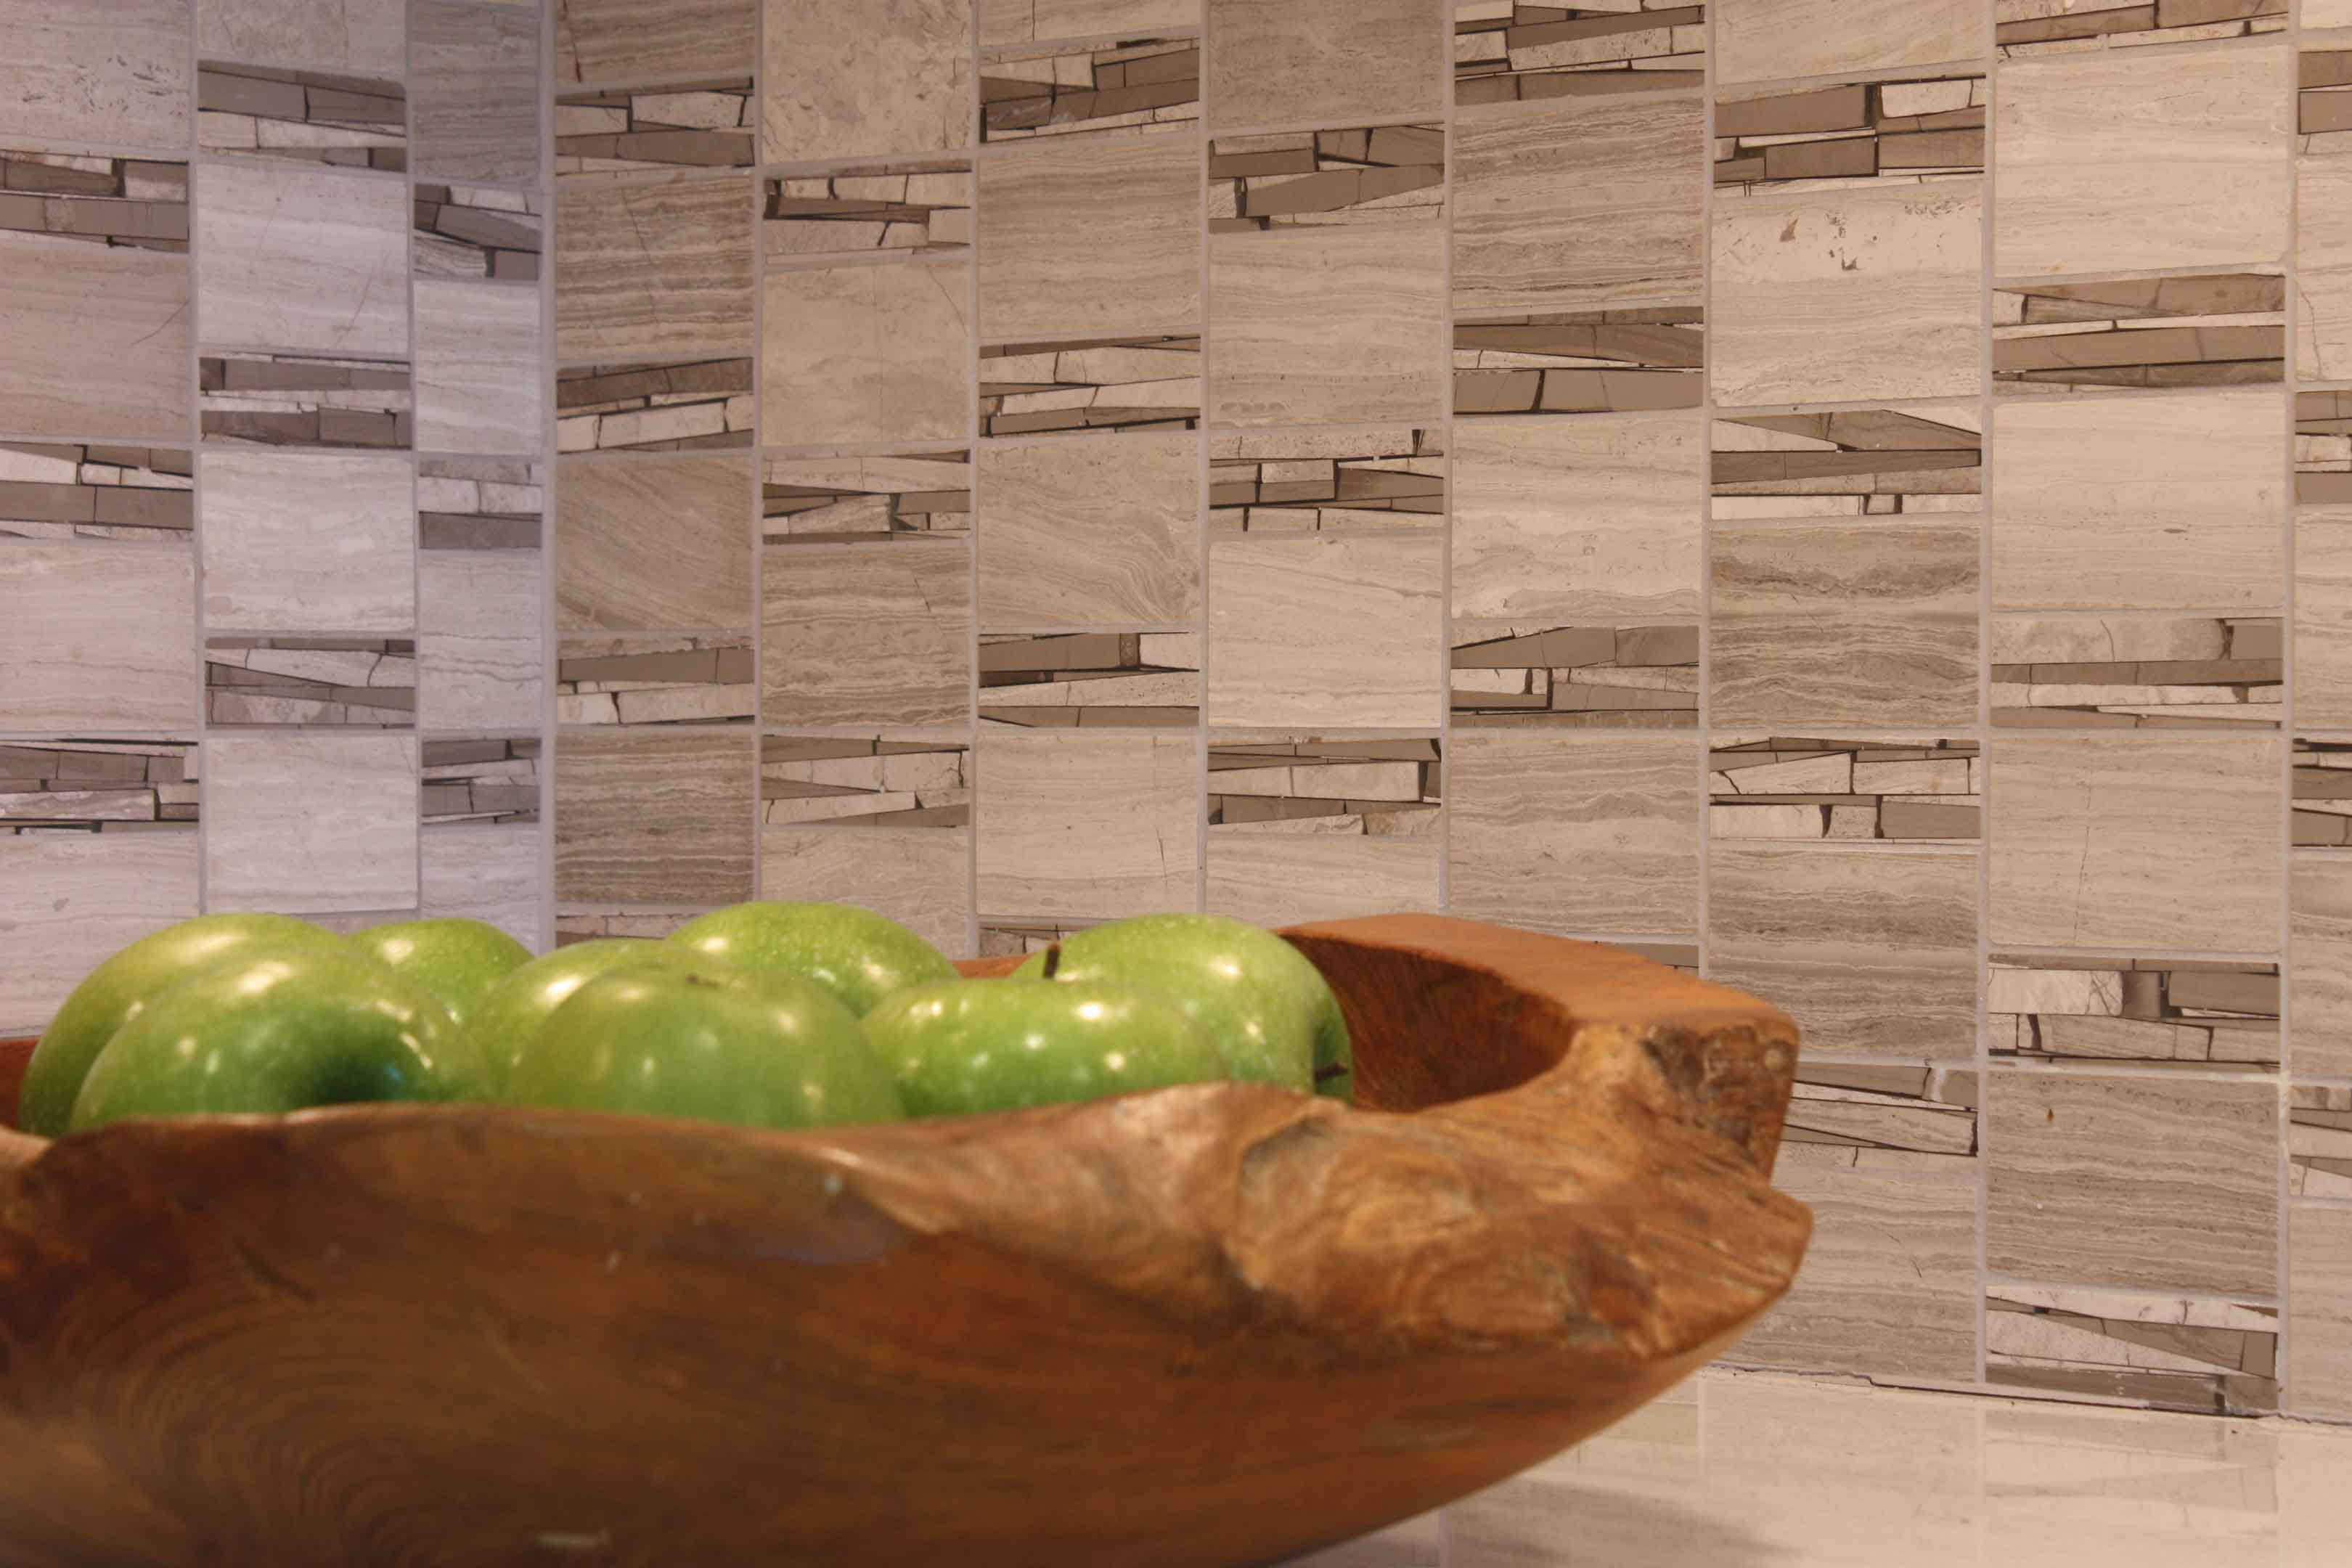 detail of apples in bowl in contemporary kitchen joan bigg kitchen choreography kitchen design ny metro area